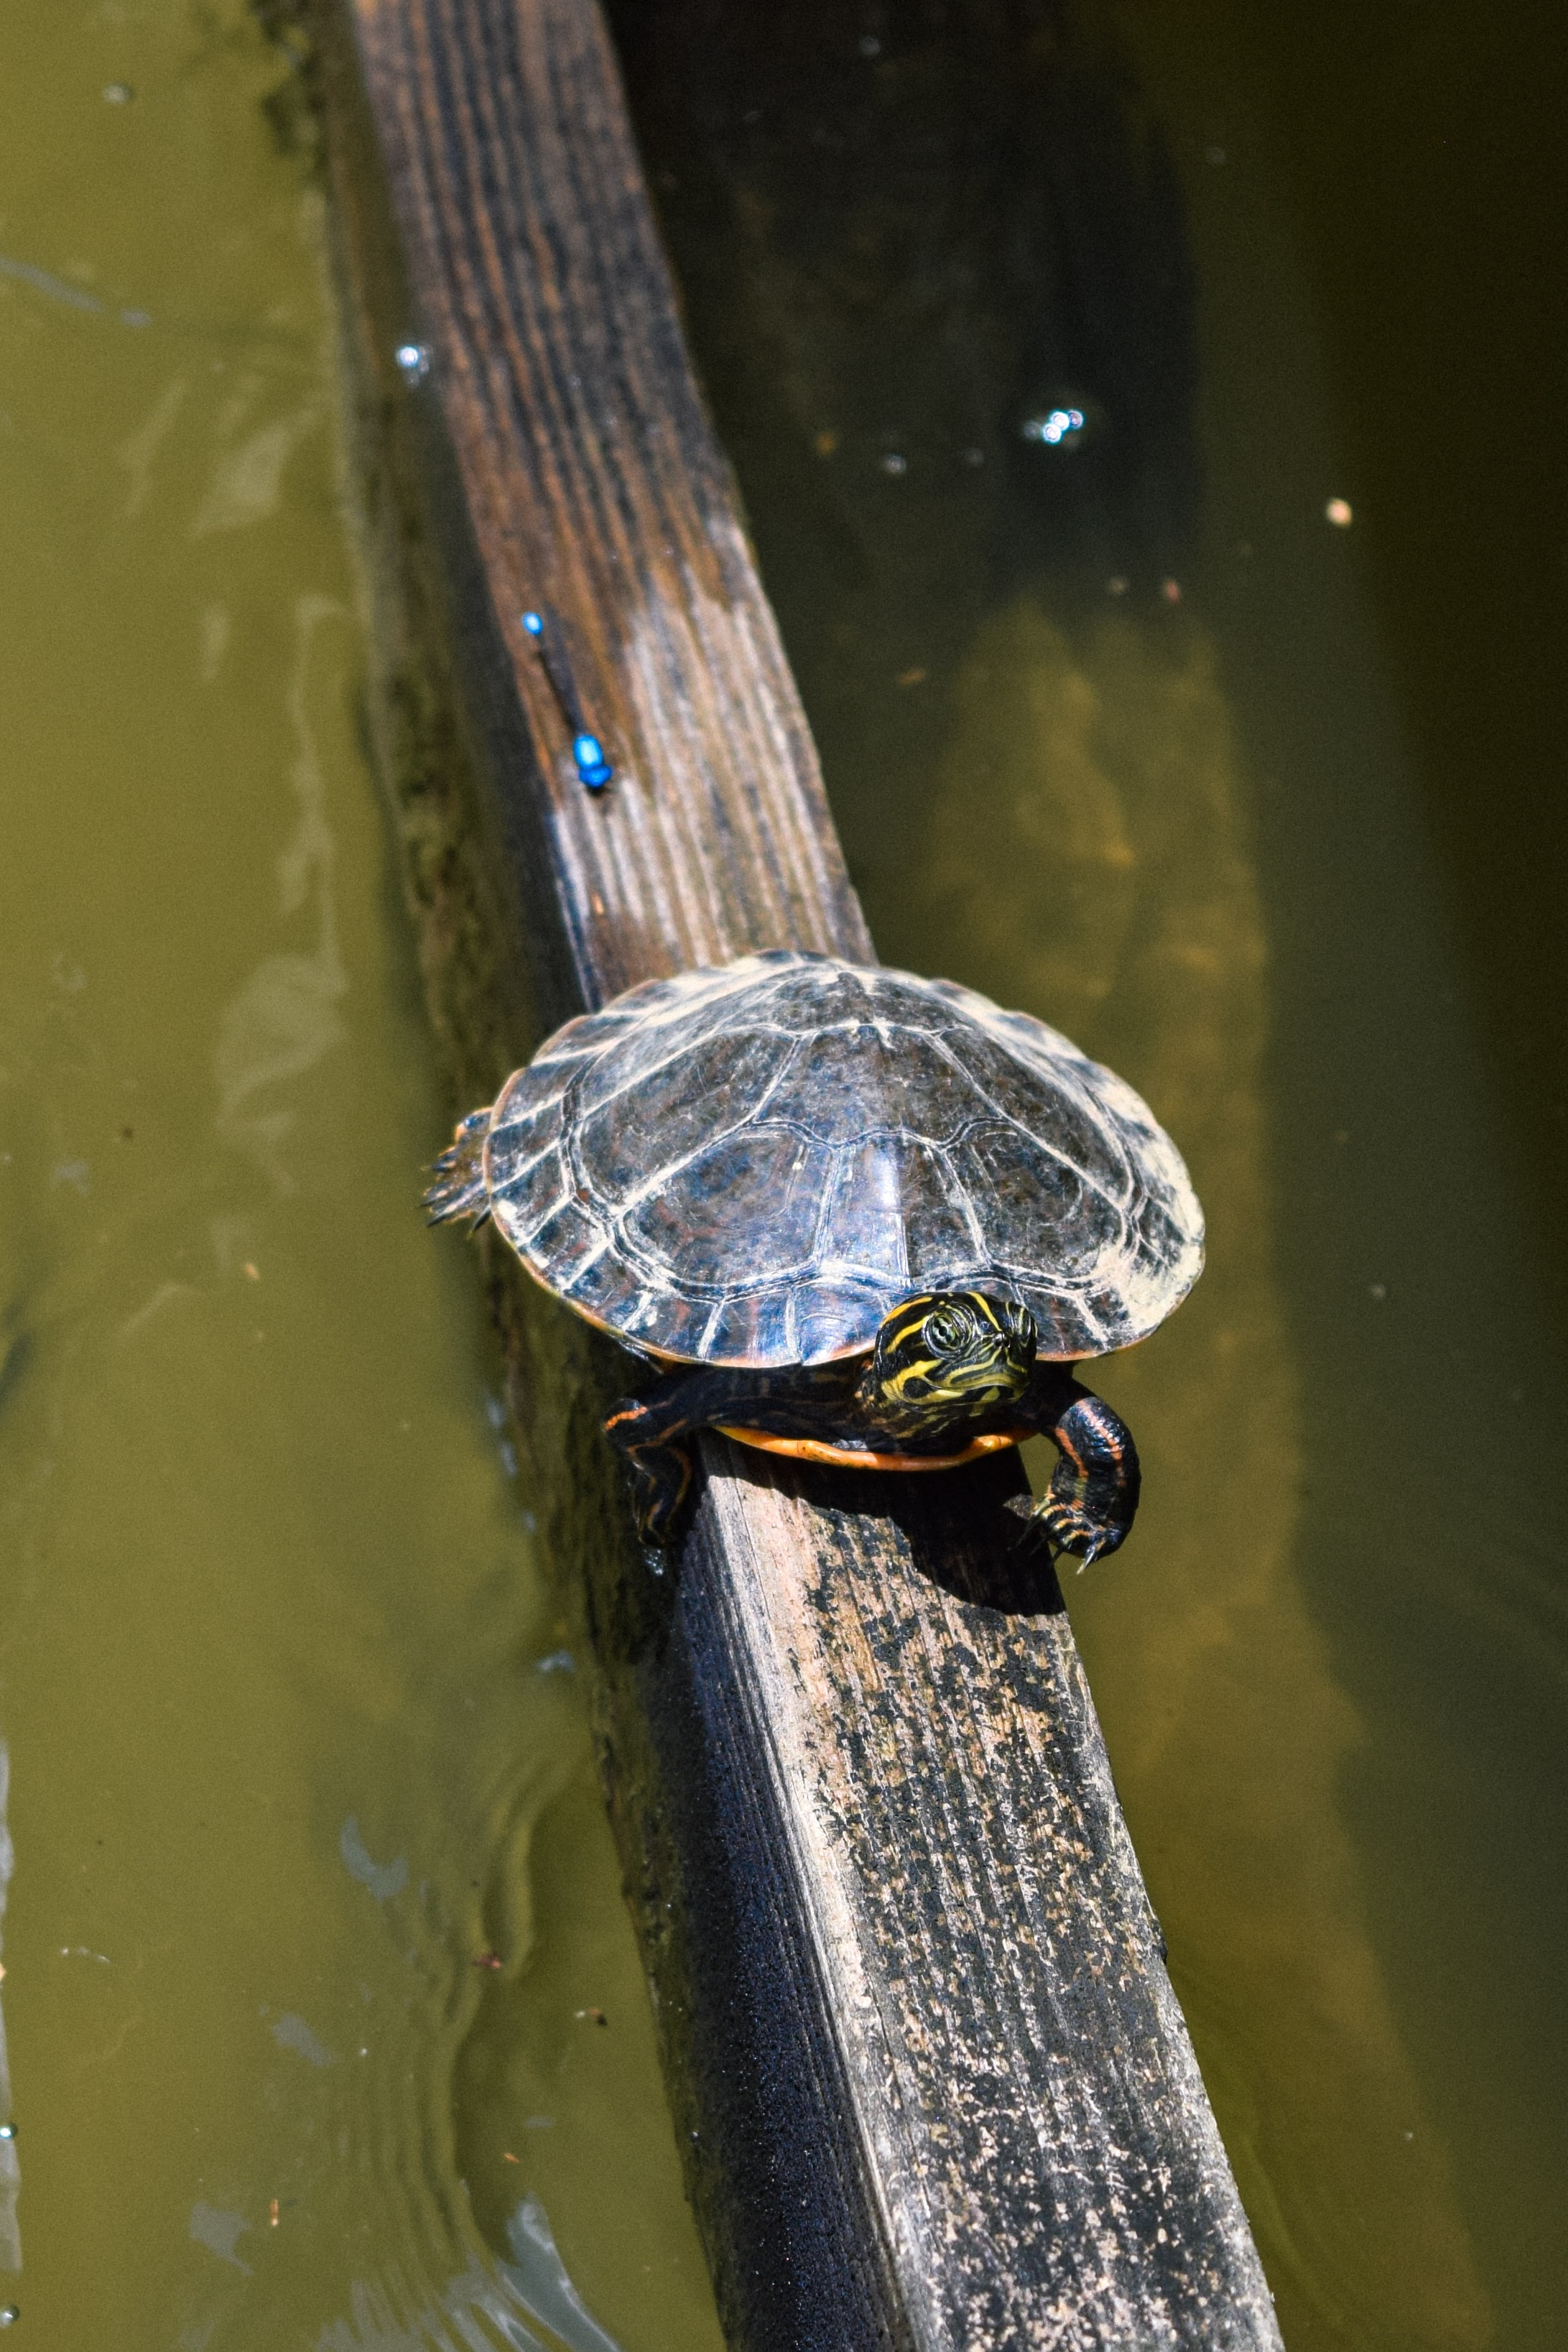 black turtle on wooden surface